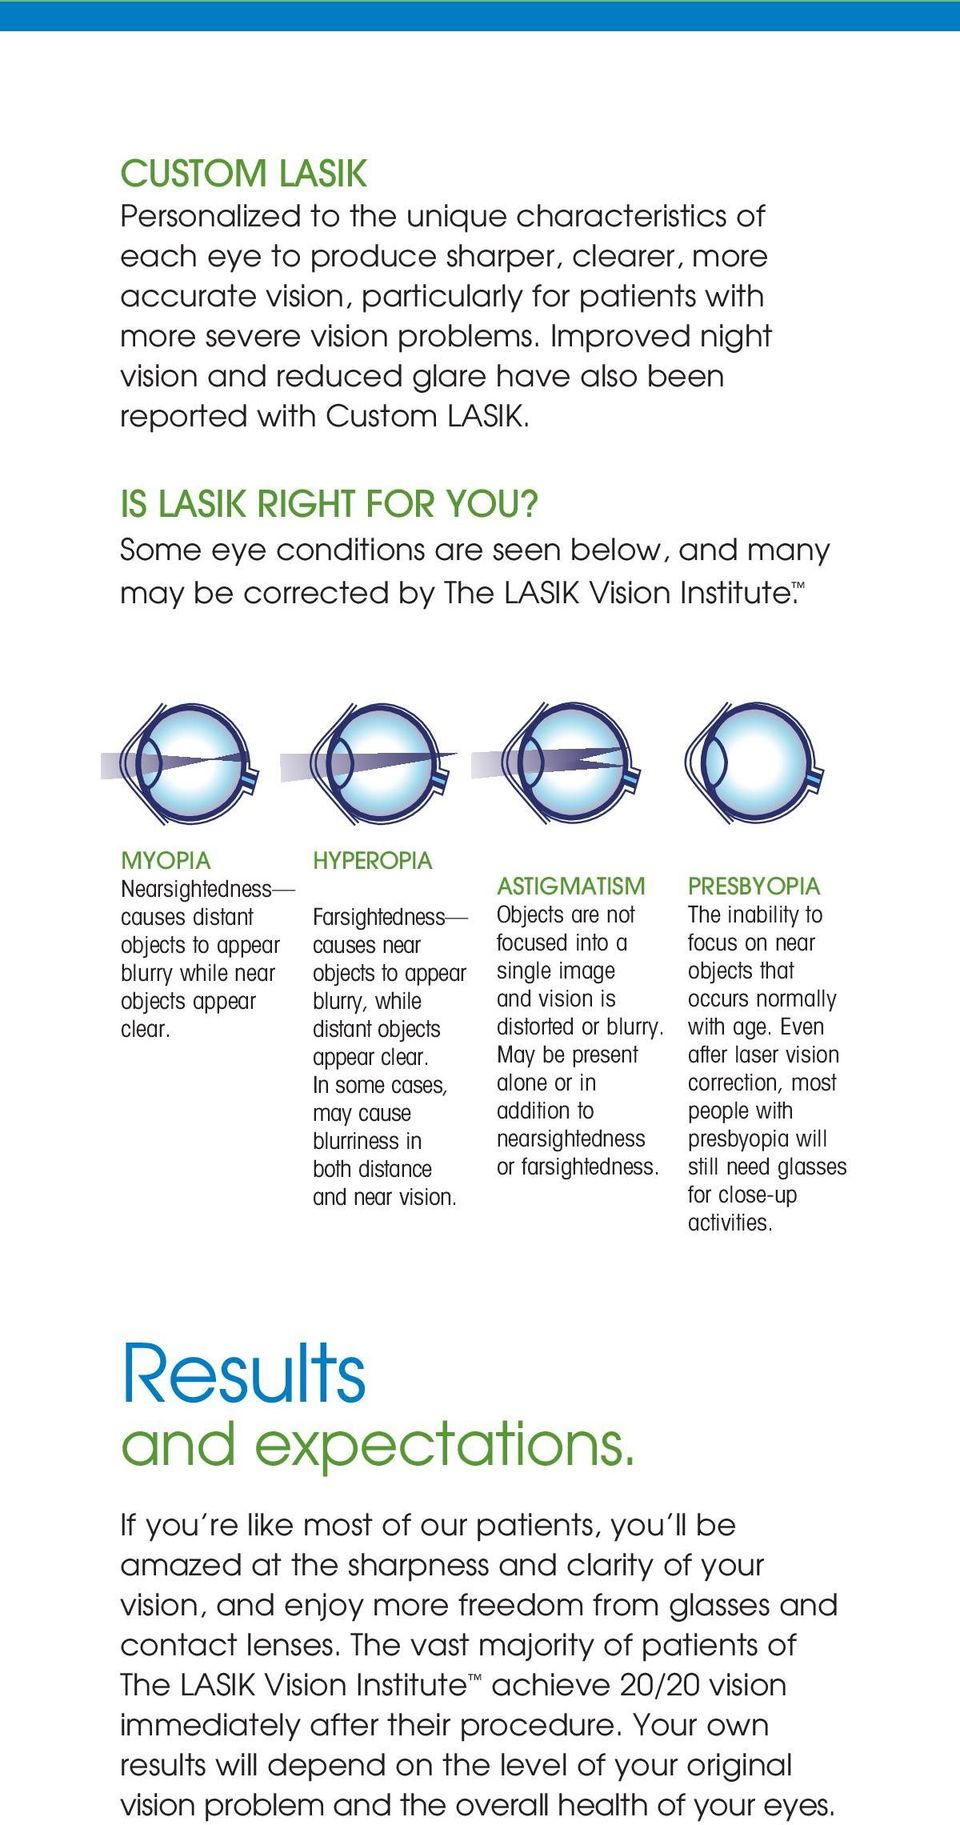 Some eye conditions are seen below, and many MYOPIA HYPEROPIA may be corrected by The LASIK Vision Institute.